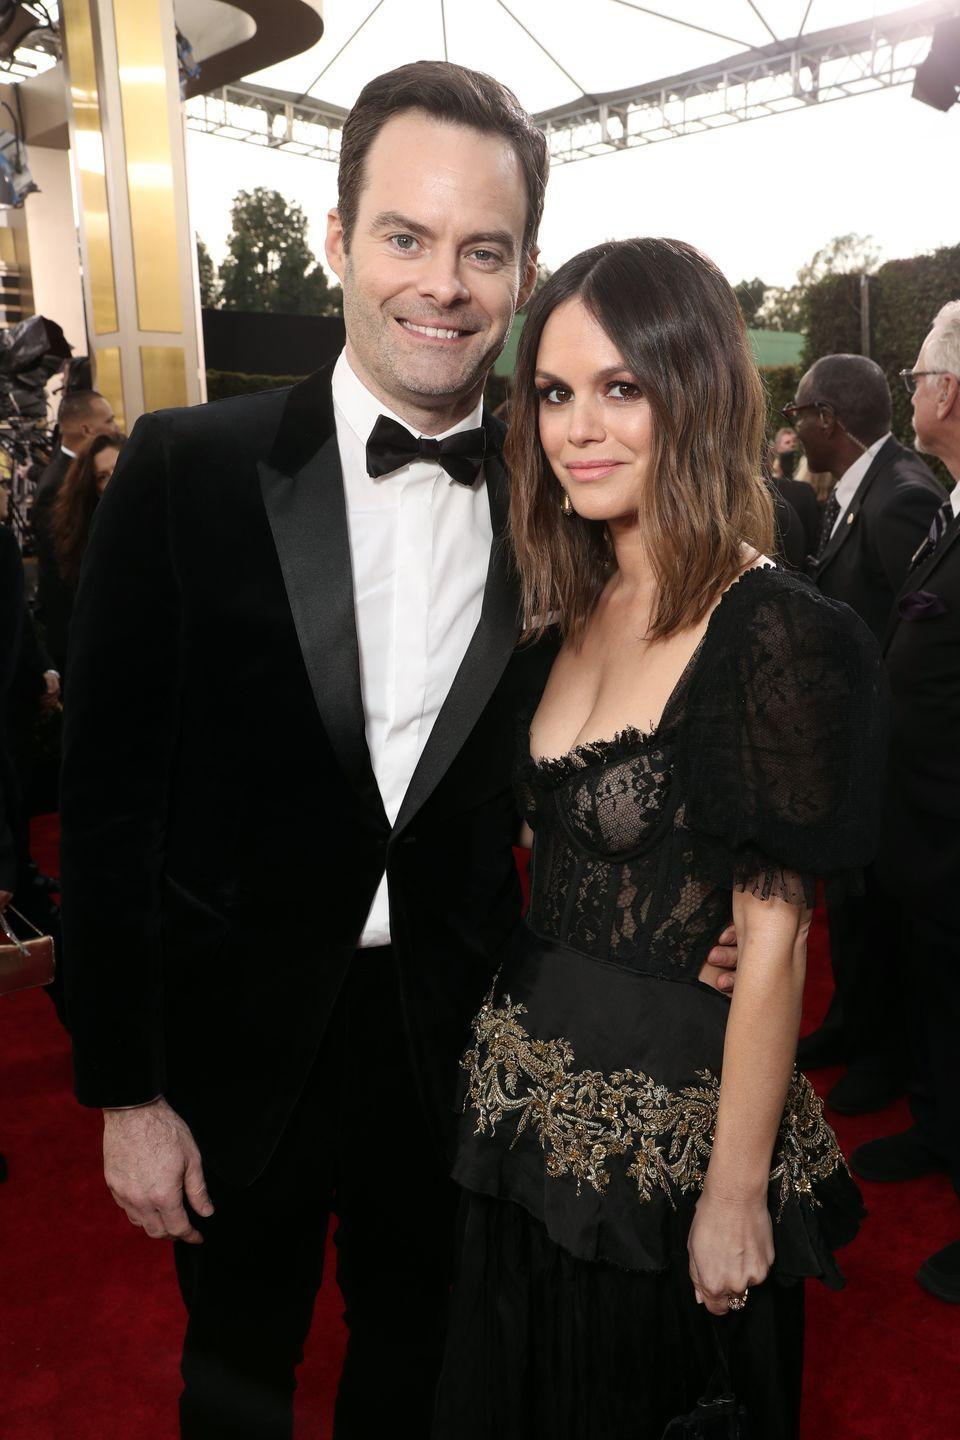 "<p>Rumors of their relationship began in December 2019 with a seemingly random <a href=""https://www.elle.com/culture/celebrities/a30313822/bill-hader-rachel-bilson-relationship-rumors/"" rel=""nofollow noopener"" target=""_blank"" data-ylk=""slk:outing at a Starbucks"" class=""link rapid-noclick-resp"">outing at a Starbucks</a> in Tulsa, Oklahoma (Hader's hometown). The following month, they made it red carpet official by <a href=""https://www.elle.com/culture/celebrities/a30406810/bill-hader-rachel-bilson-golden-globes-red-carpet-debut/"" rel=""nofollow noopener"" target=""_blank"" data-ylk=""slk:attending the Golden Globes"" class=""link rapid-noclick-resp"">attending the Golden Globes</a> together. Bilson and Hader originally met as love interests in 2013's <em>The To Do List</em> (which was directed by Hader's now-ex wife, Maggie Carey). But not much is known about their current relationship. Hader's <em>Barry </em>co-star Henry Winkler <em>did</em> give his seal of approval during a recent interview with <em><a href=""https://people.com/tv/henry-winkler-approves-bill-hader-wonderful-girlfriend-rachel-bilsons-relationship/"" rel=""nofollow noopener"" target=""_blank"" data-ylk=""slk:People"" class=""link rapid-noclick-resp"">People</a></em><em>, </em>referring to Bilson as Hader's ""wonderful girlfriend.""</p>"